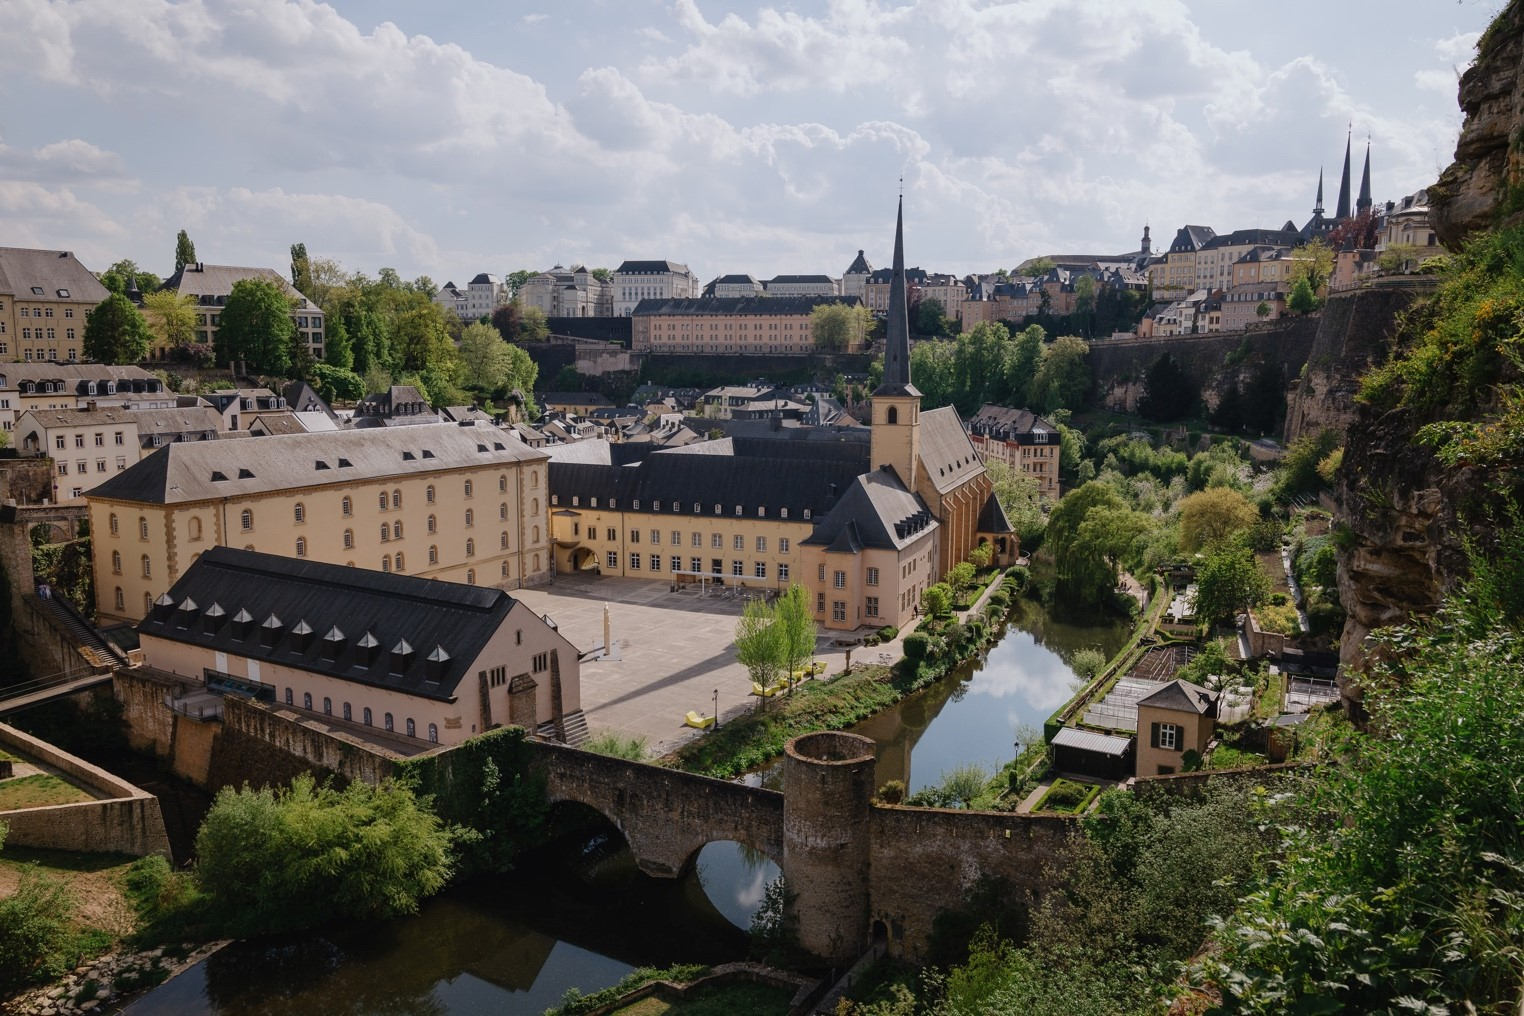 22 good reasons to visit Luxembourg City as a Tourist